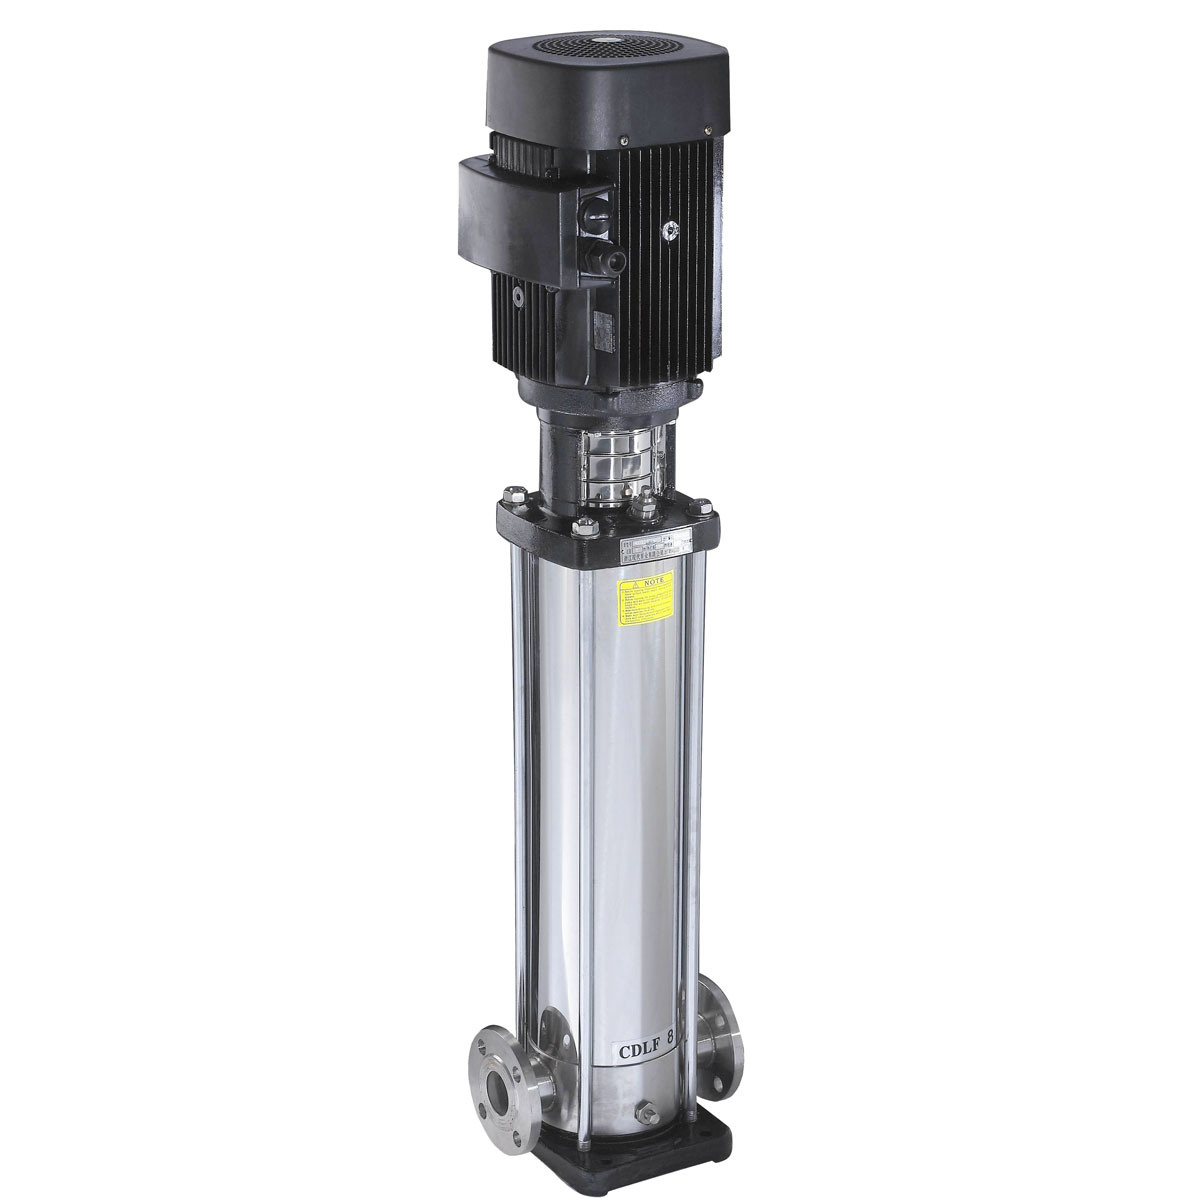 China stainless steel vertical multistage pump cdlf